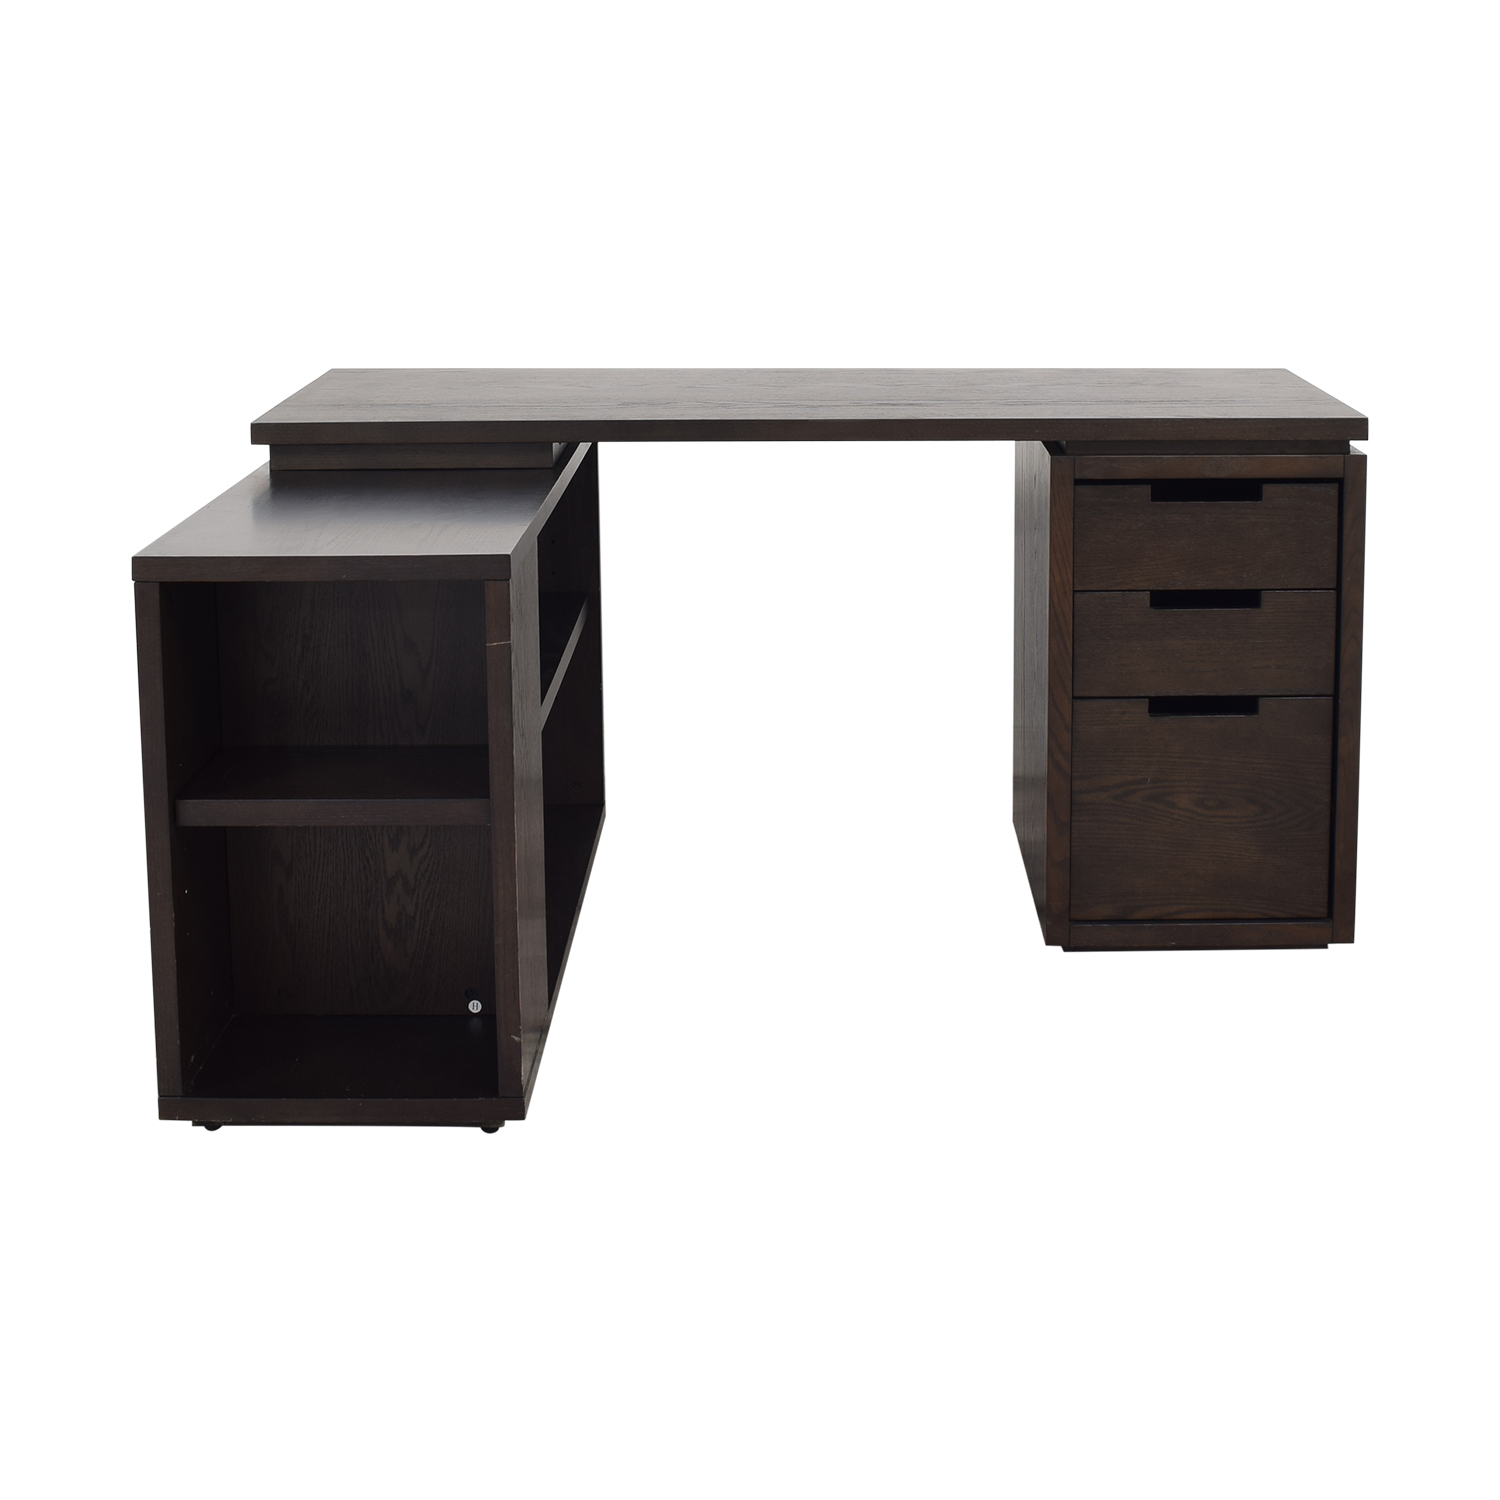 West Elm West Elm Modular Office L-shaped Desk and Bookcase dark brown